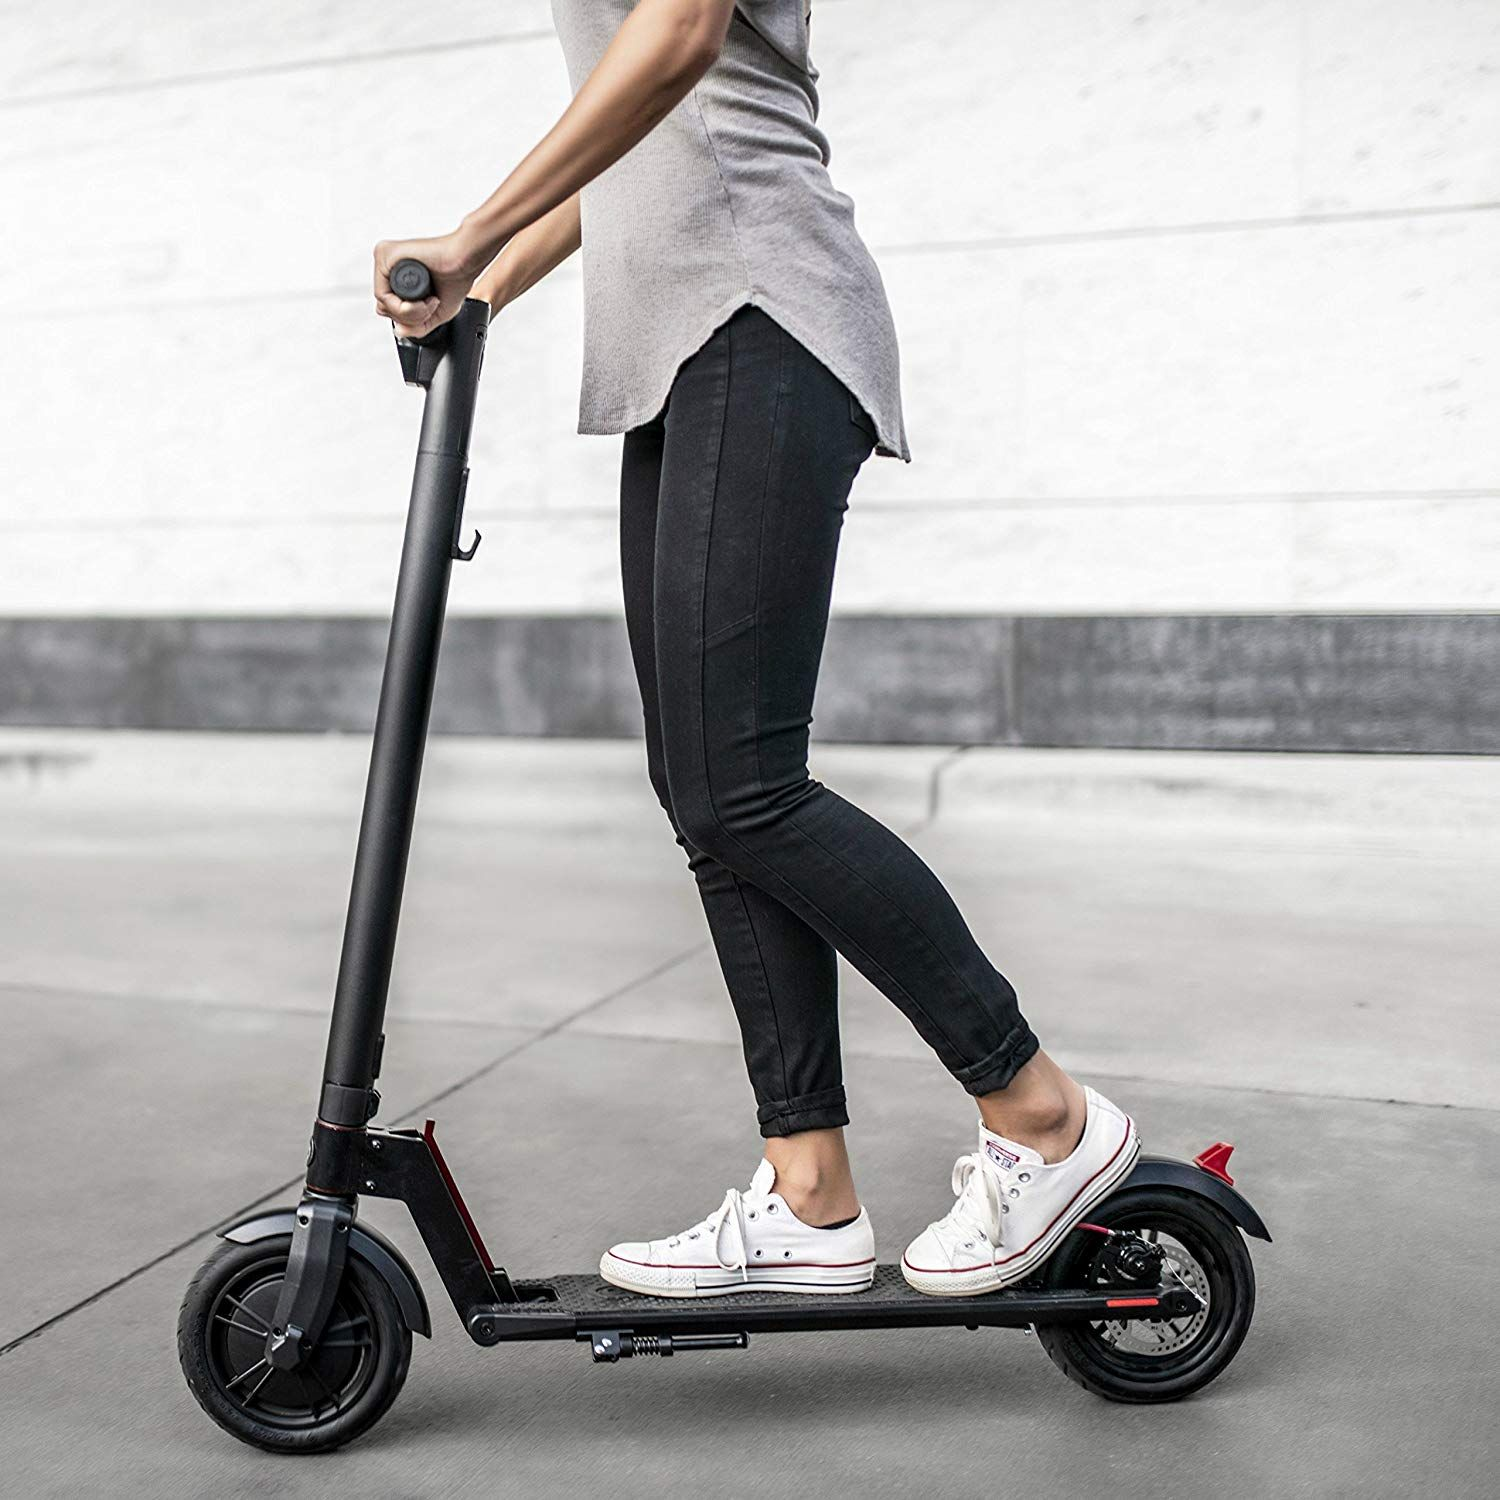 Amazon Com Gotrax Gxl Commuting Electric Scooter 8 5 Air Filled Tires 15 5mph Up To 1 Best Electric Scooter Electric Scooter For Kids Electric Scooter